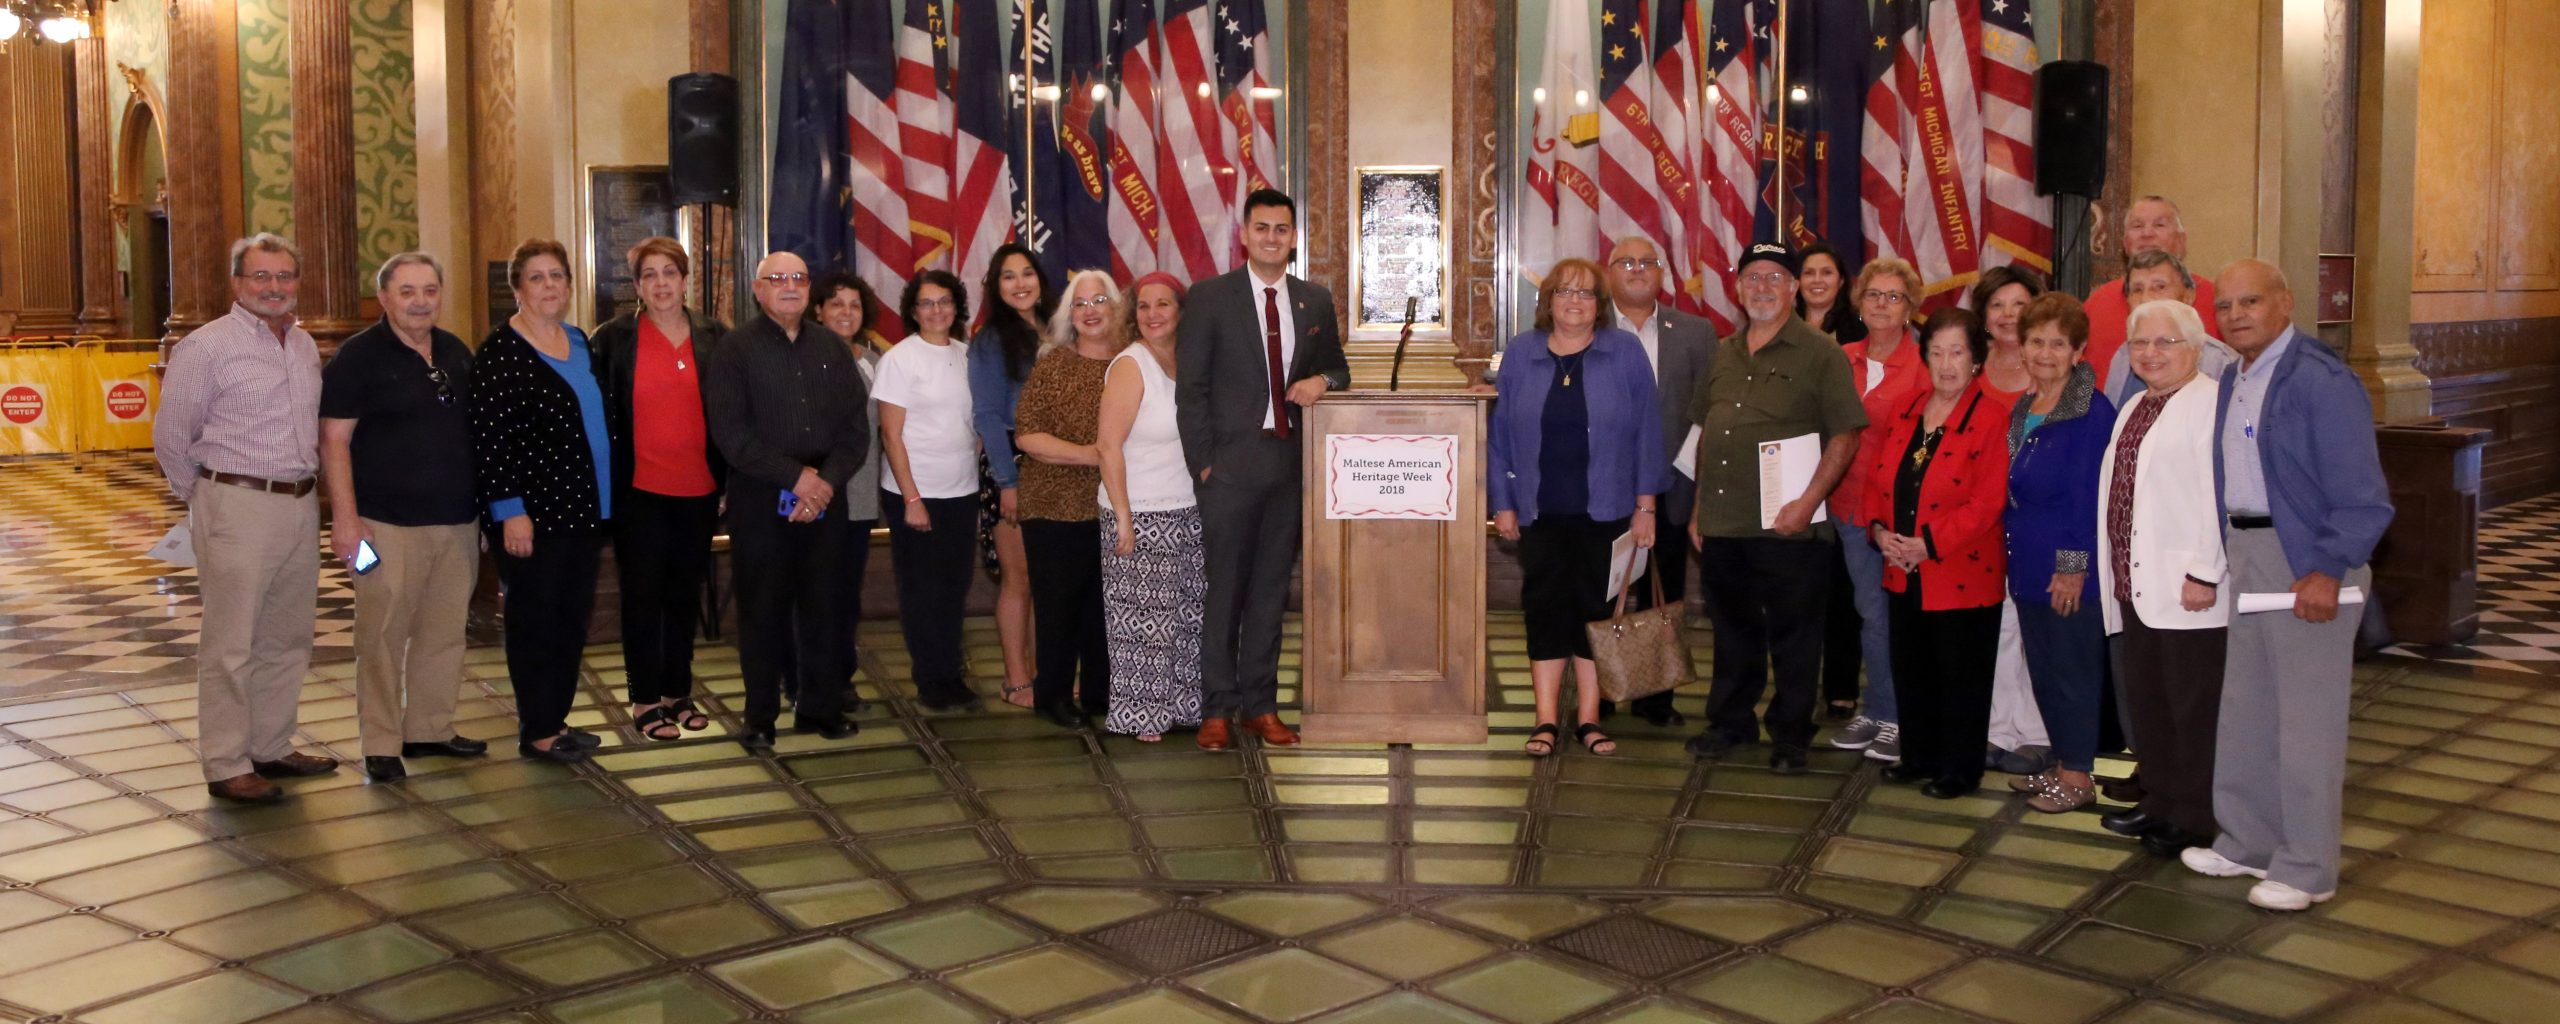 State Rep. Darrin Camilleri (D-Brownstown Township) hosted dozens of Maltese-Americans at the state Capitol to celebrate Maltese-American Heritage Week in Michigan, Wednesday, Sept. 26, 2018.